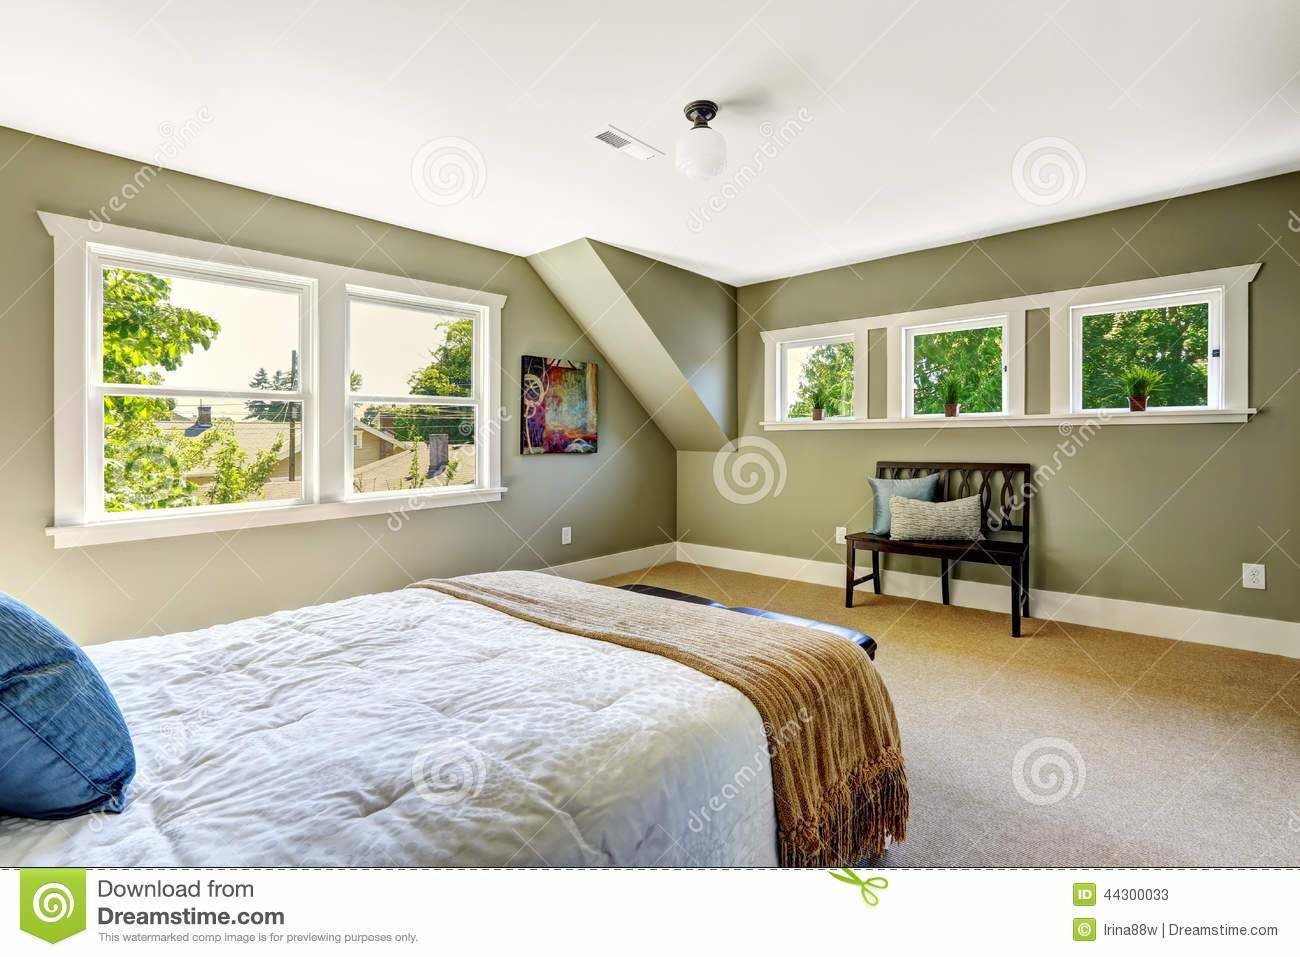 Best Bedroom With Green Walls And Vaulted Ceiling Stock Image With Pictures